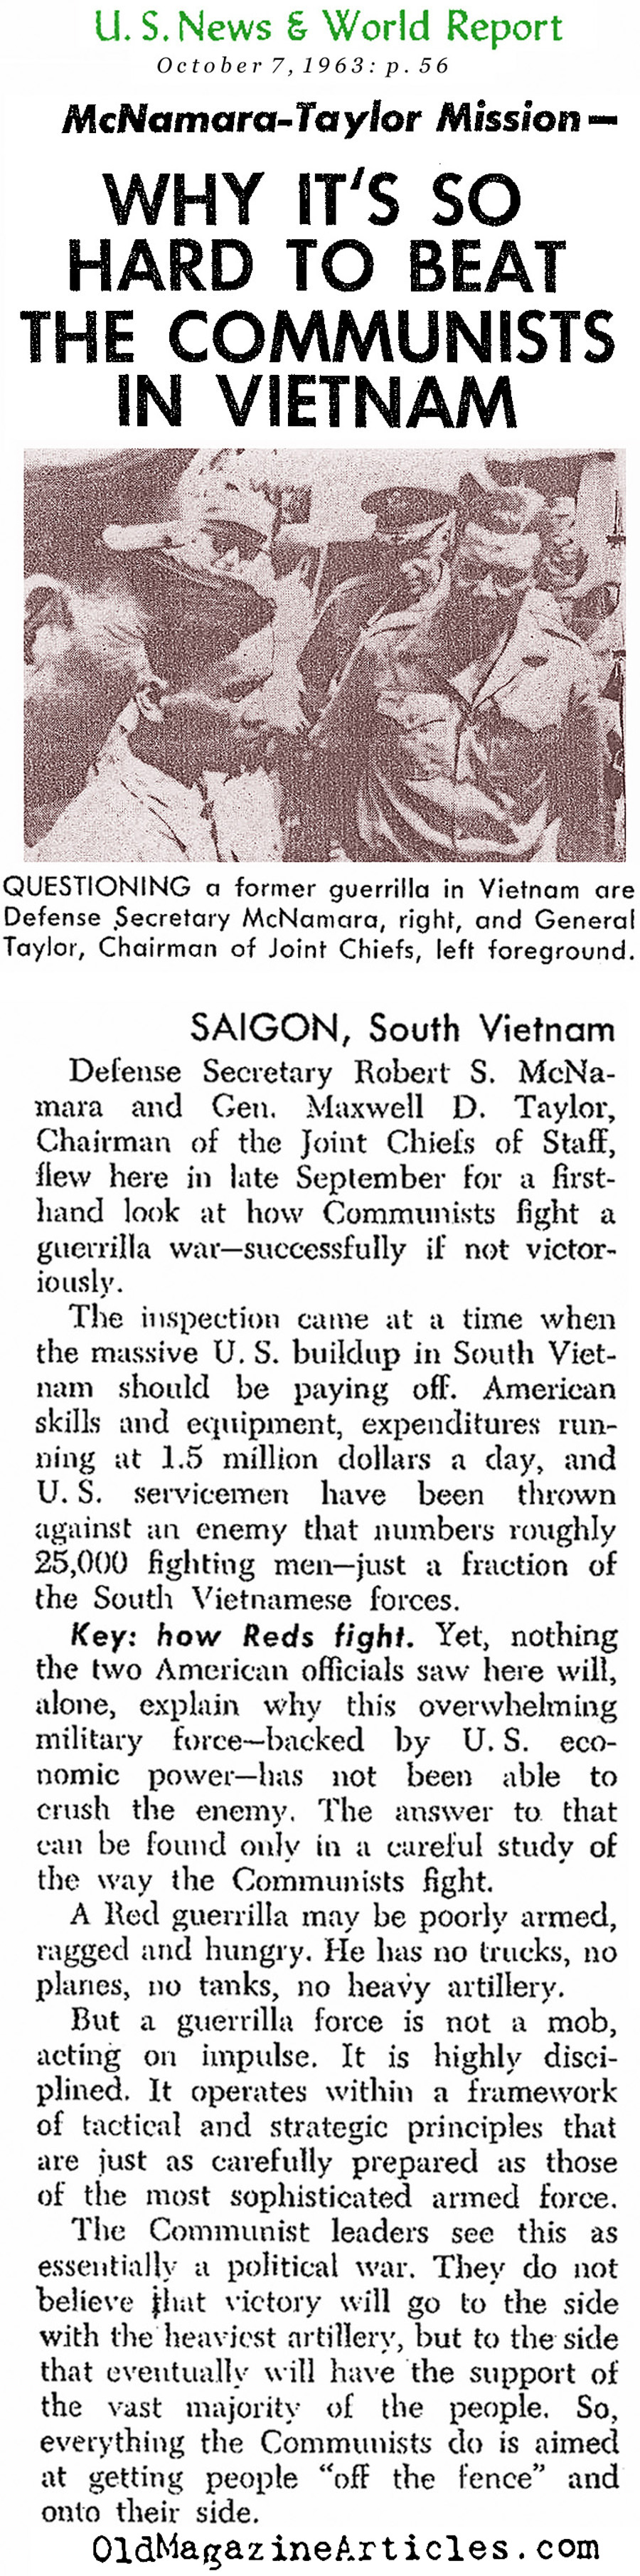 The Difficulties of This War (United States News, 1963)